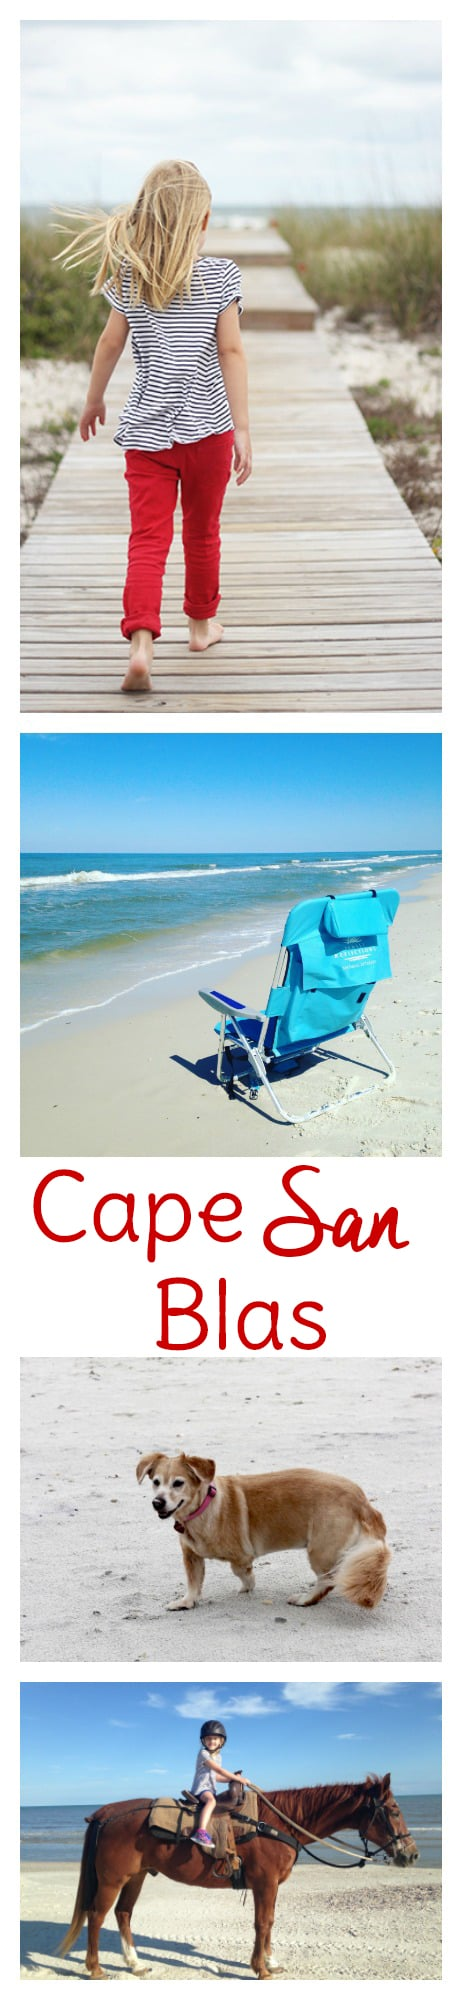 On the hunt for great beach vacation spots? Cape San Blas, Florida has so much to offer as a beach vacation destination. Check out these 5 reasons why!